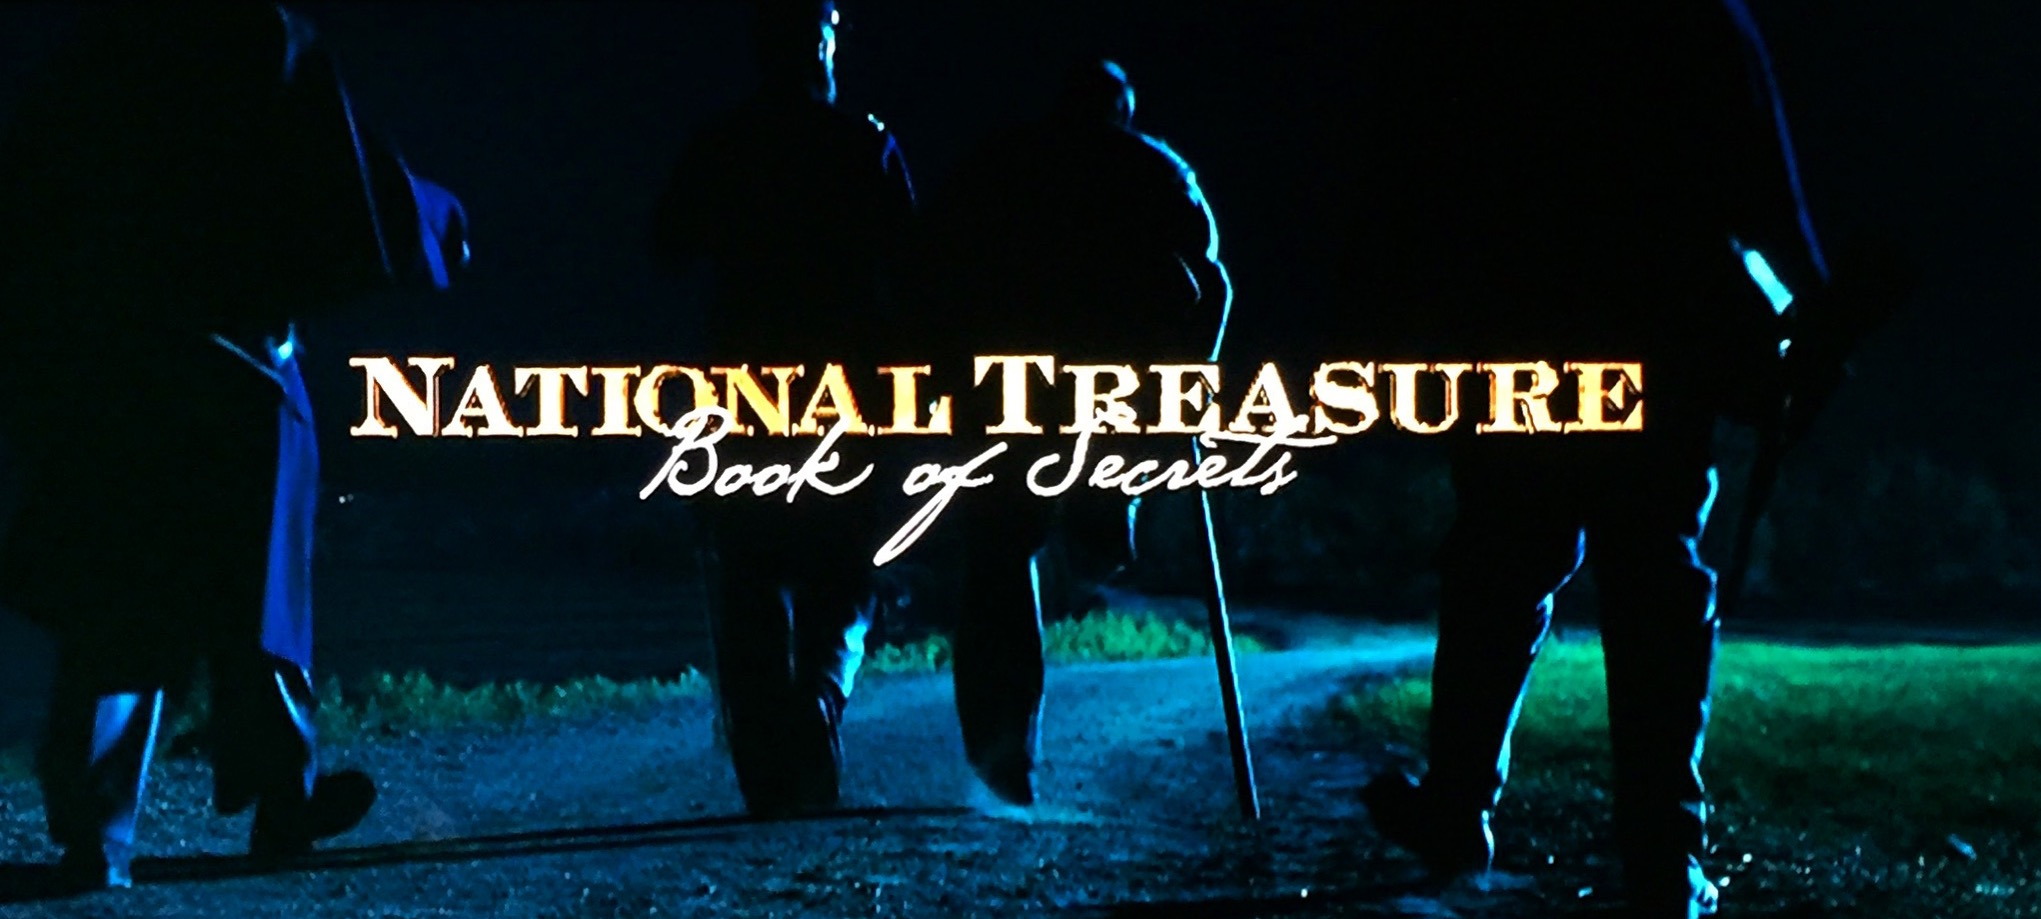 National Treasure Book Of Secrets 2007 The Gang S All Here Mike S Review The Cageclub Podcast Network